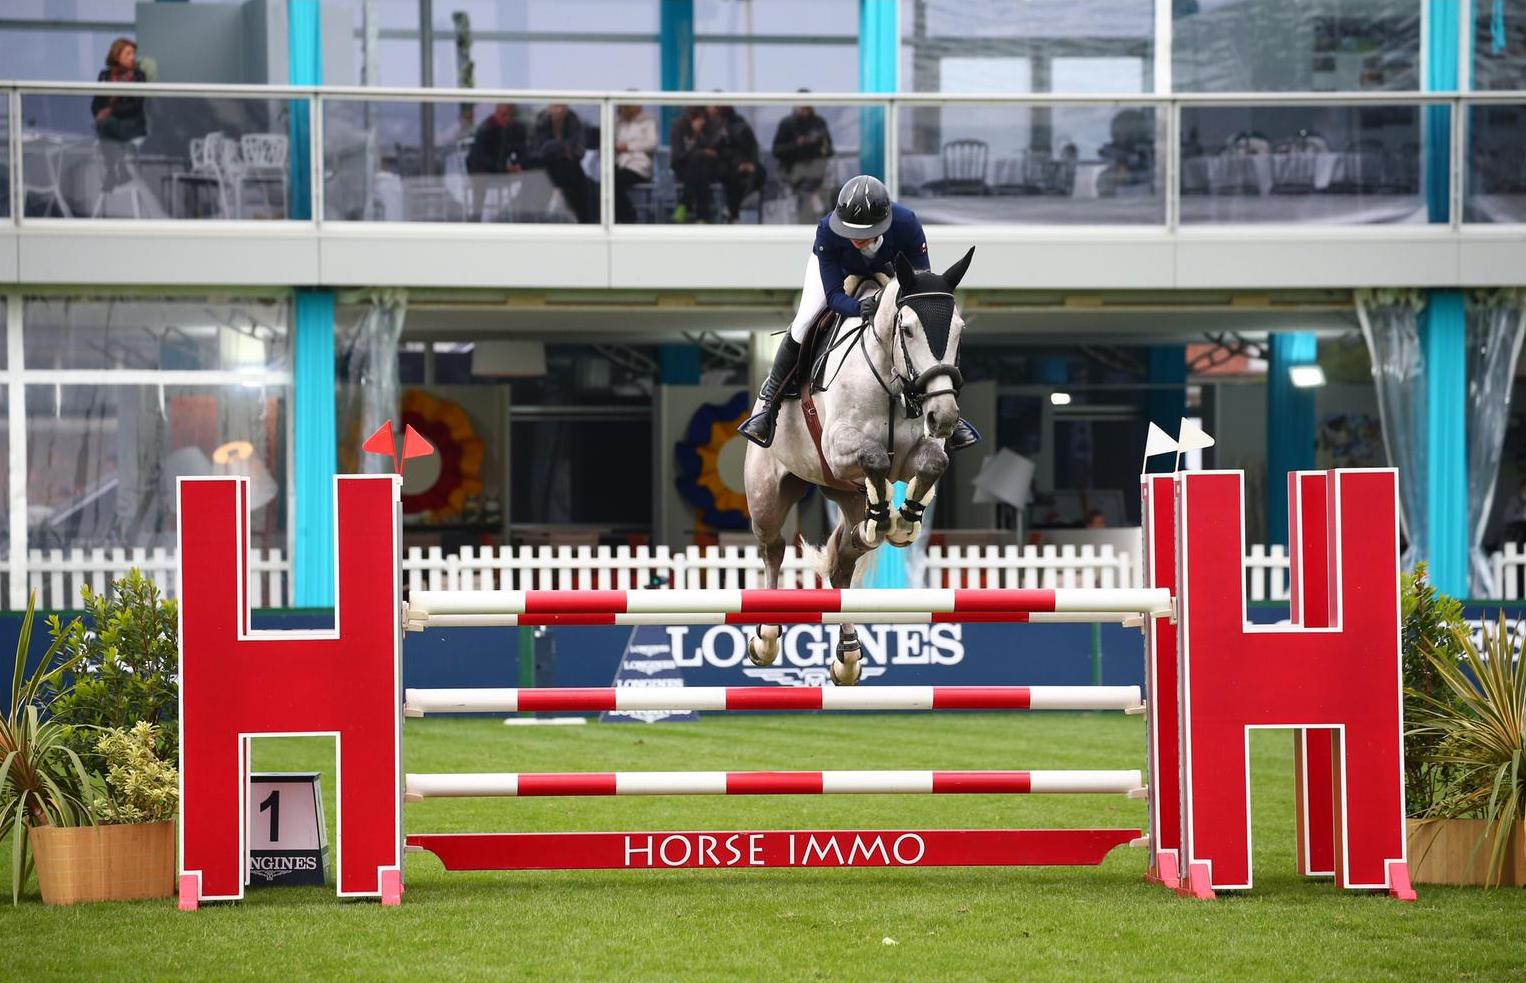 IMG 20190521 WA0002 - Partenaire du Longines Jumping International de La Baule